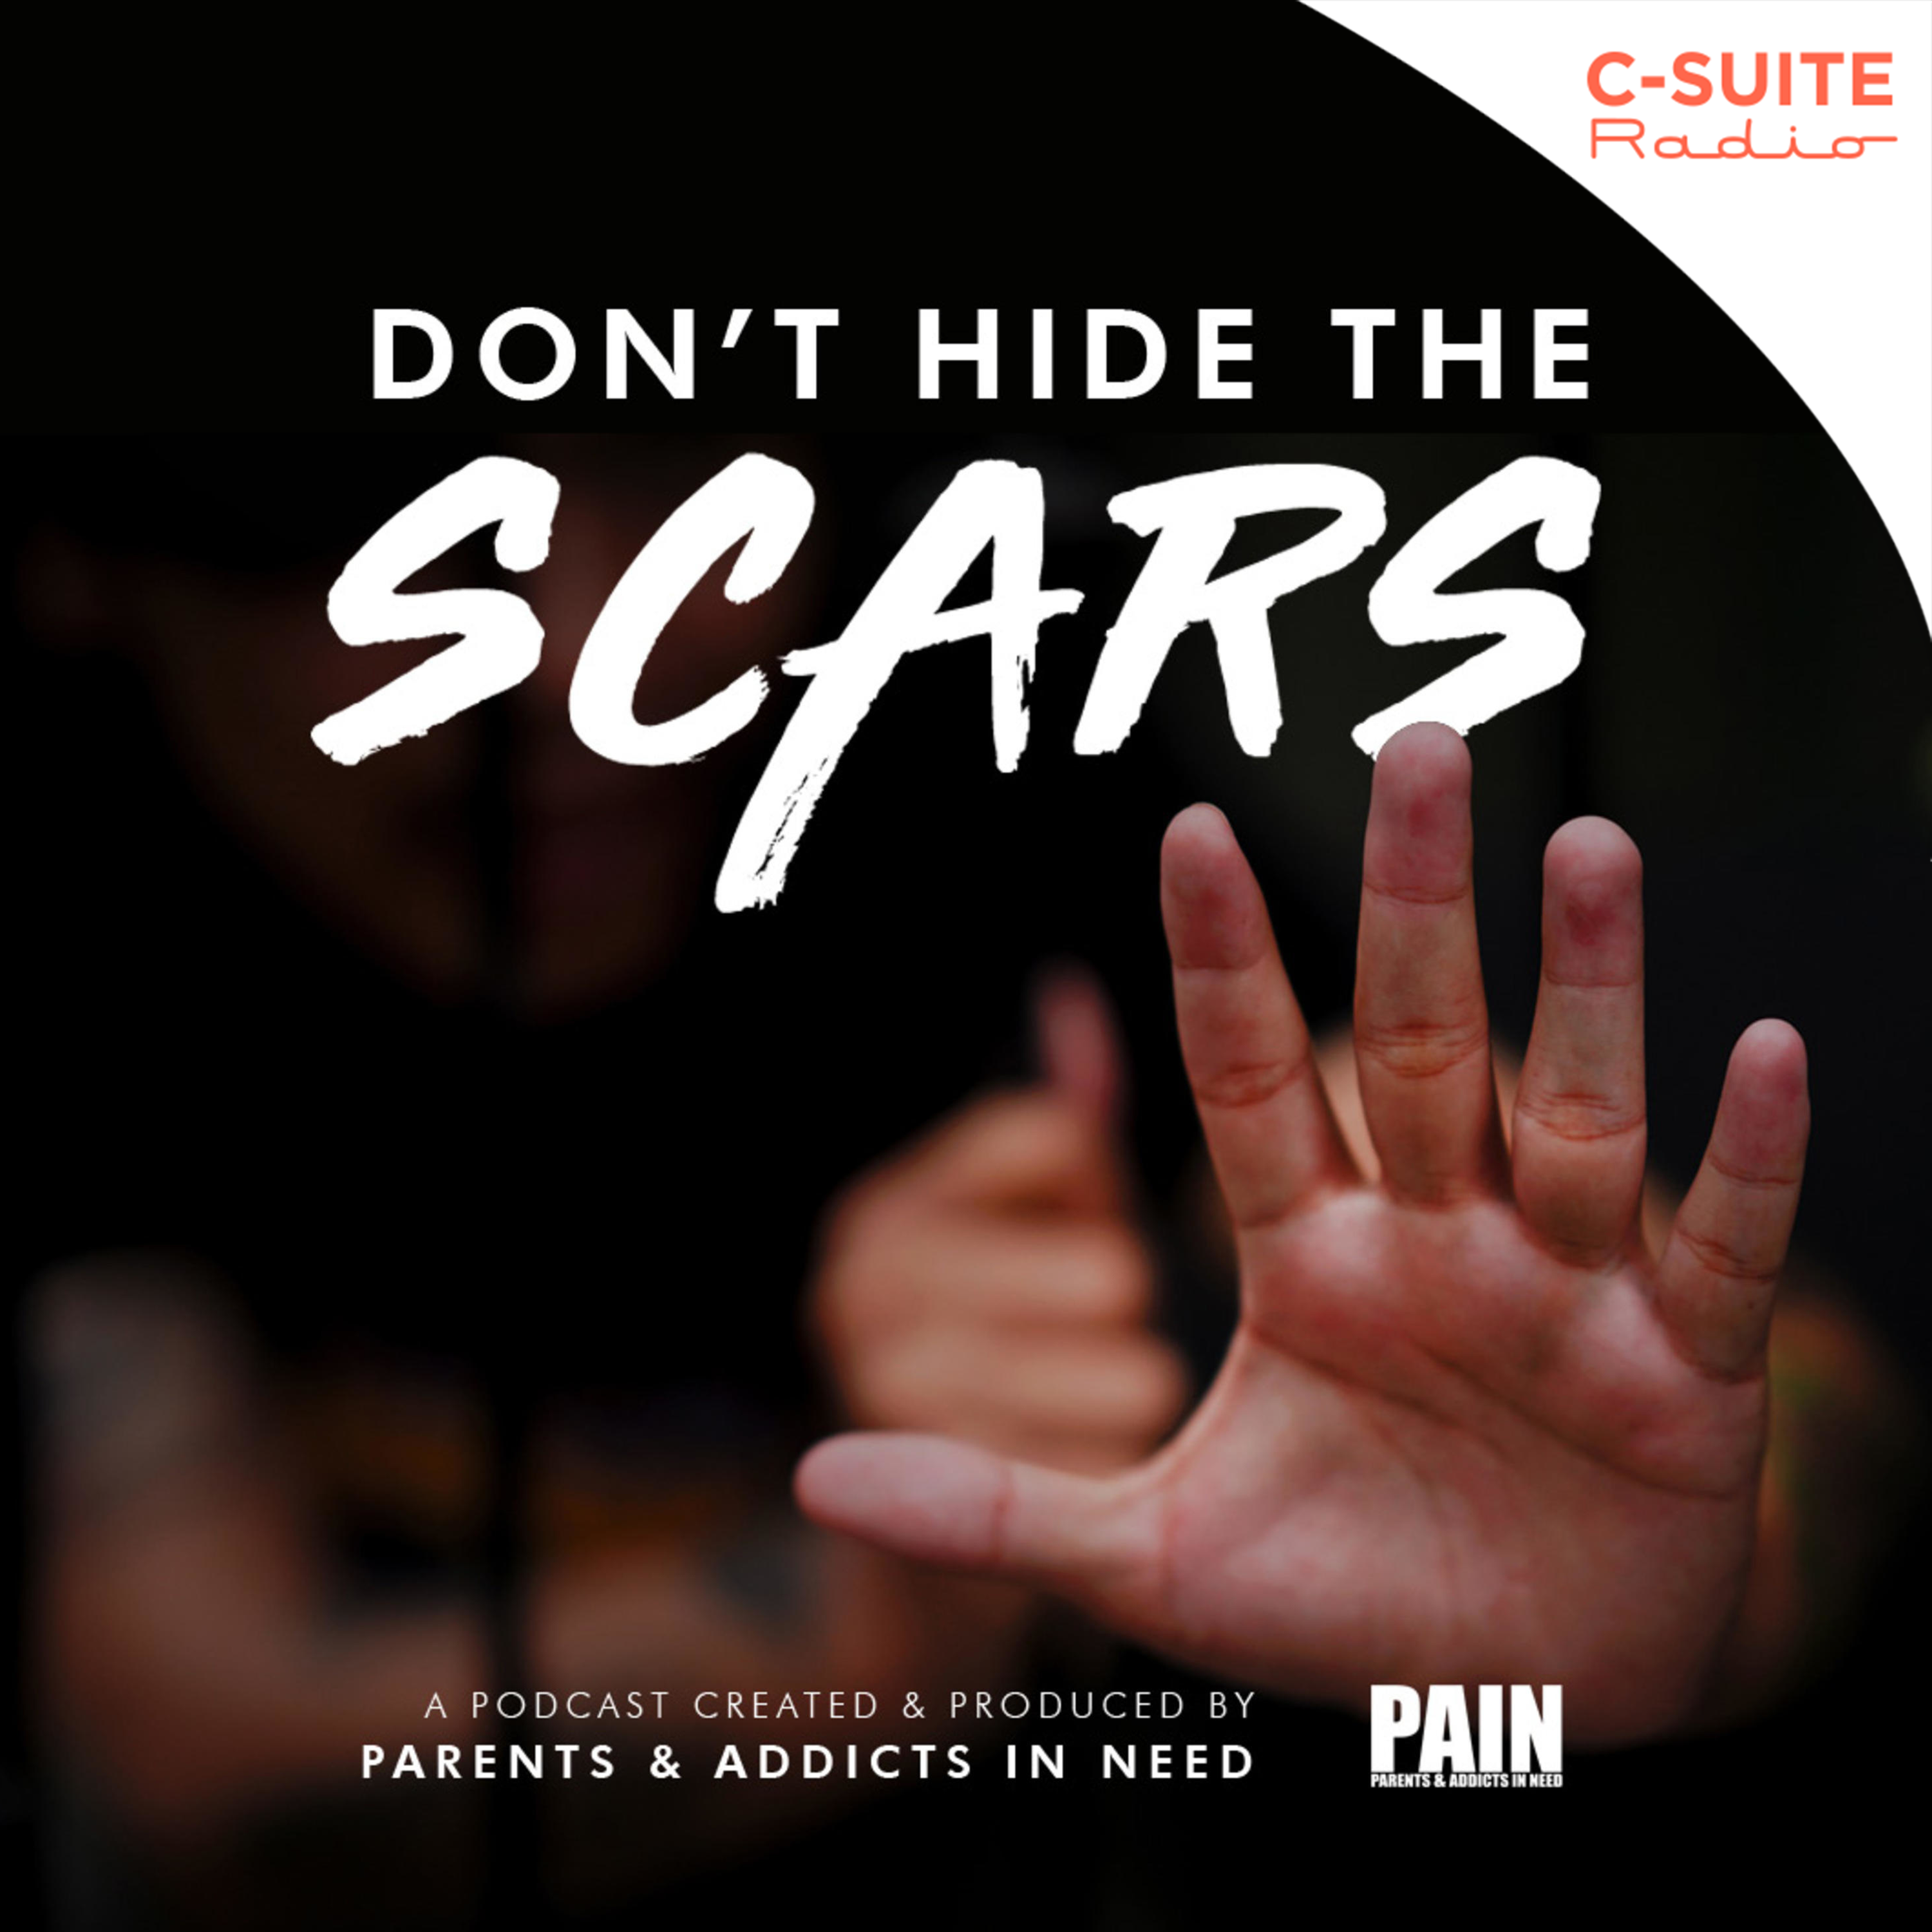 Don't Hide The Scars